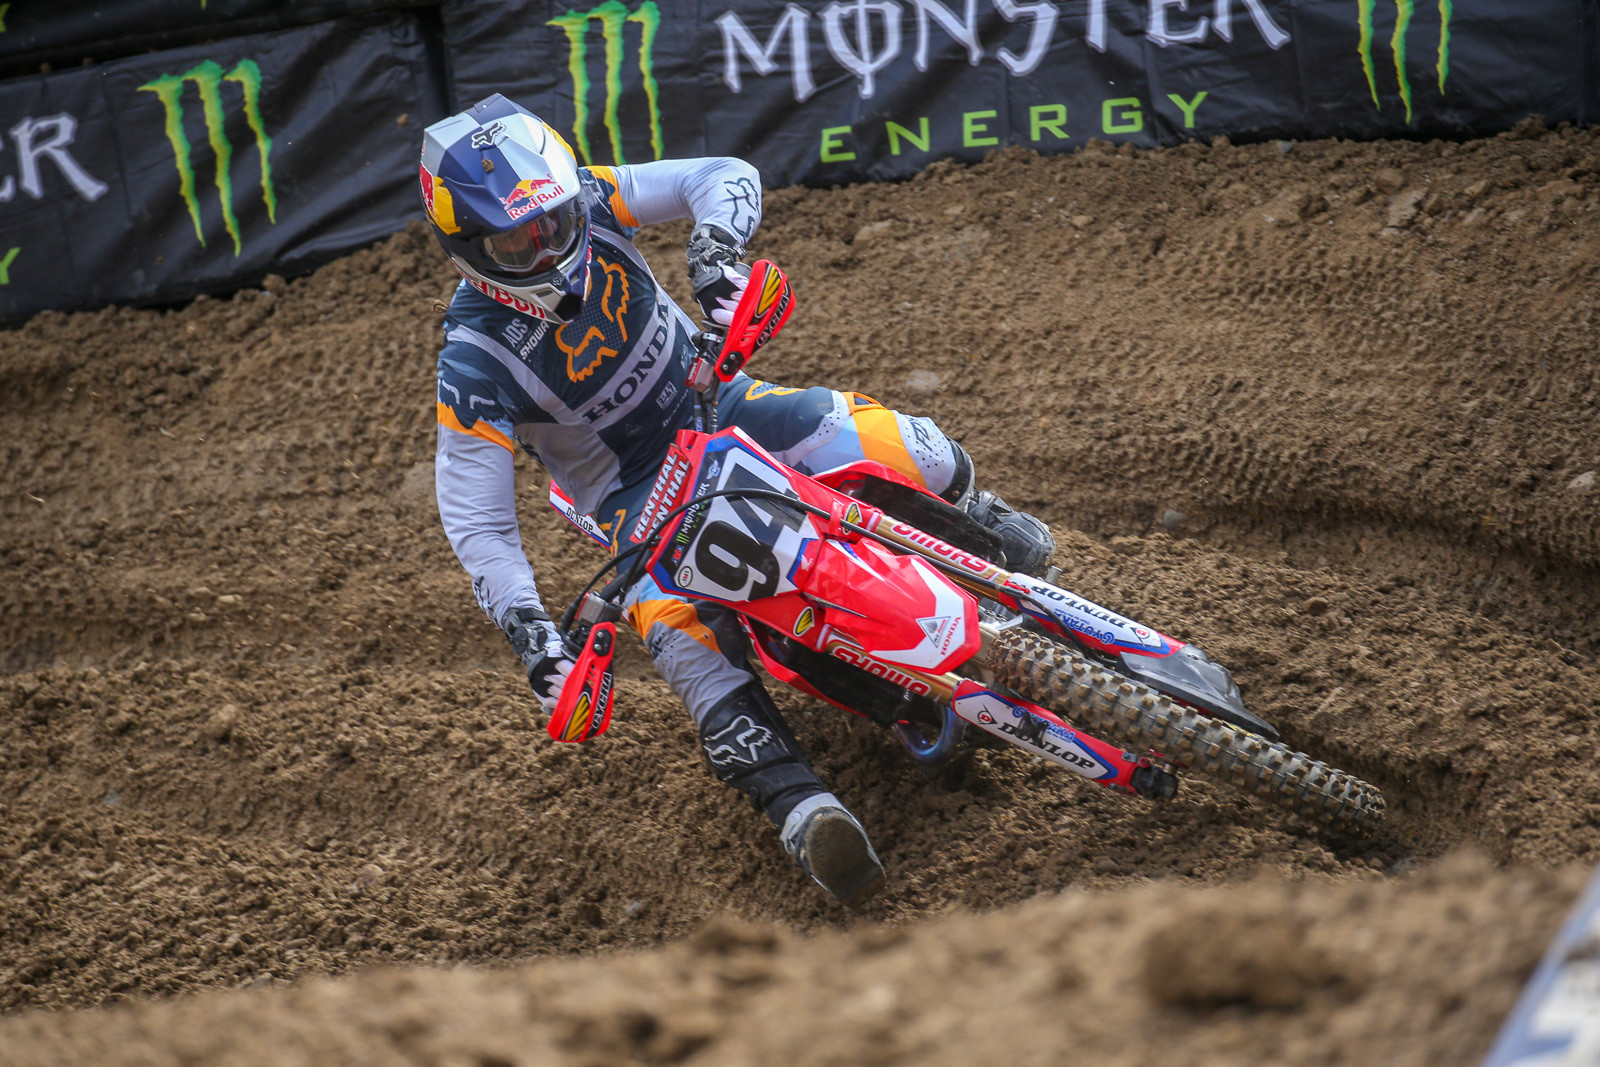 Ken Roczen has huge numbers on social media, both in followers and interaction.